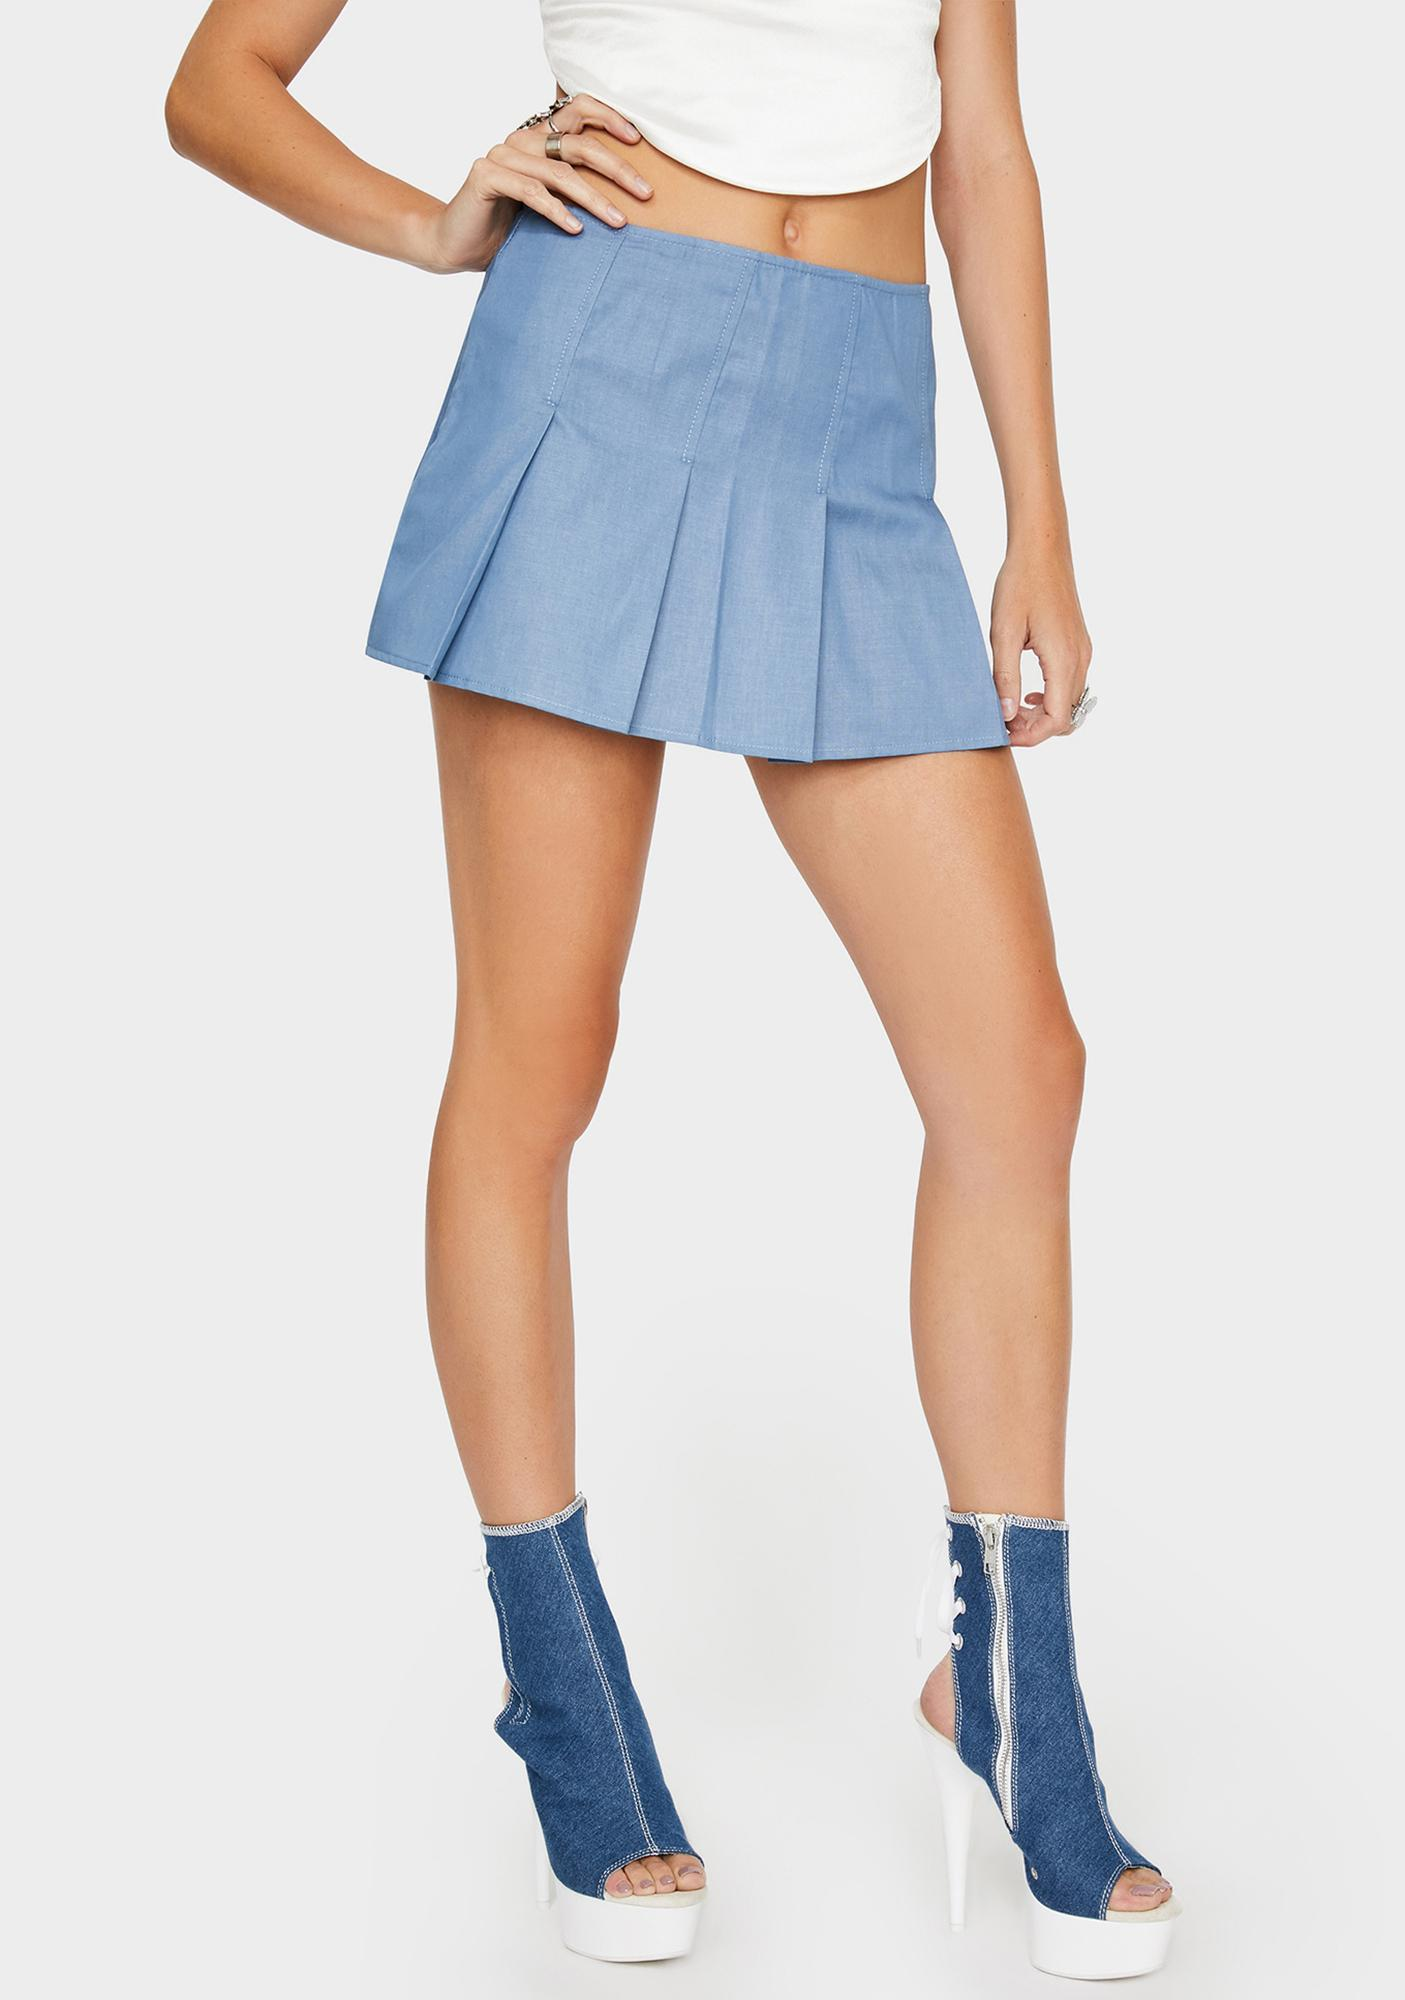 Faded Not Your Business Denim Skirt